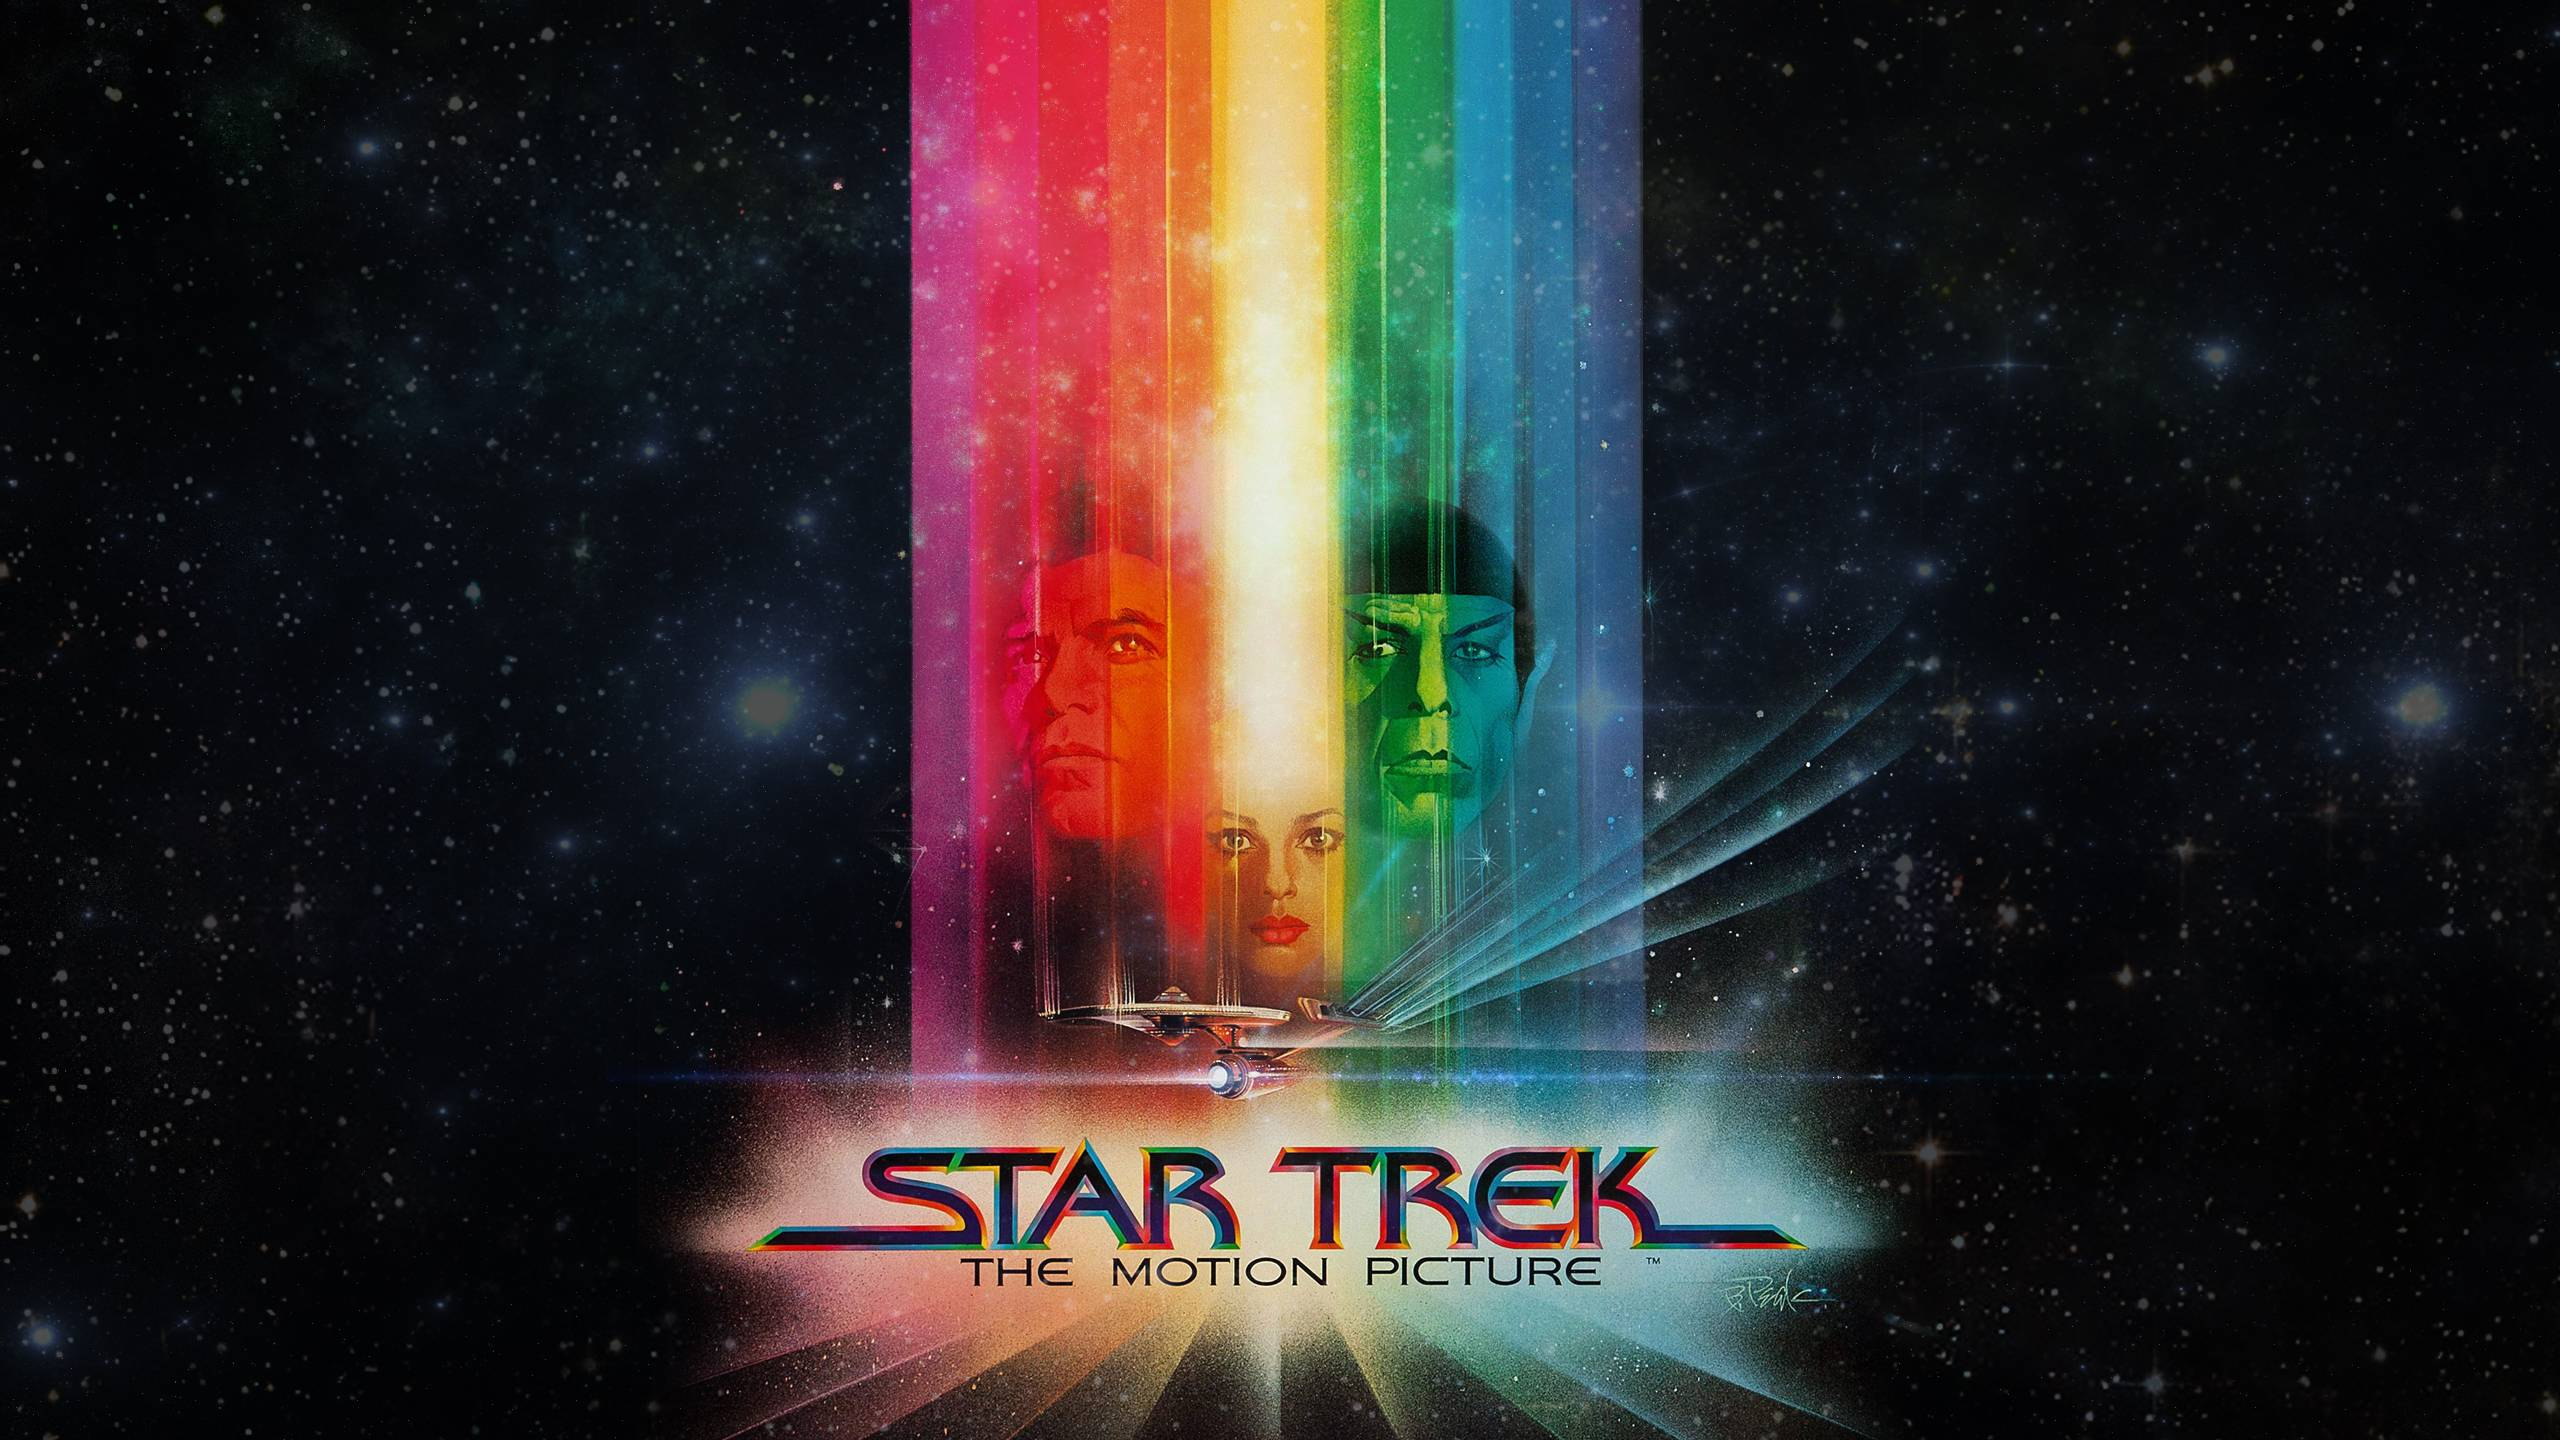 Star Trek The Motion Picture Movie Wallpapers 2560x1440